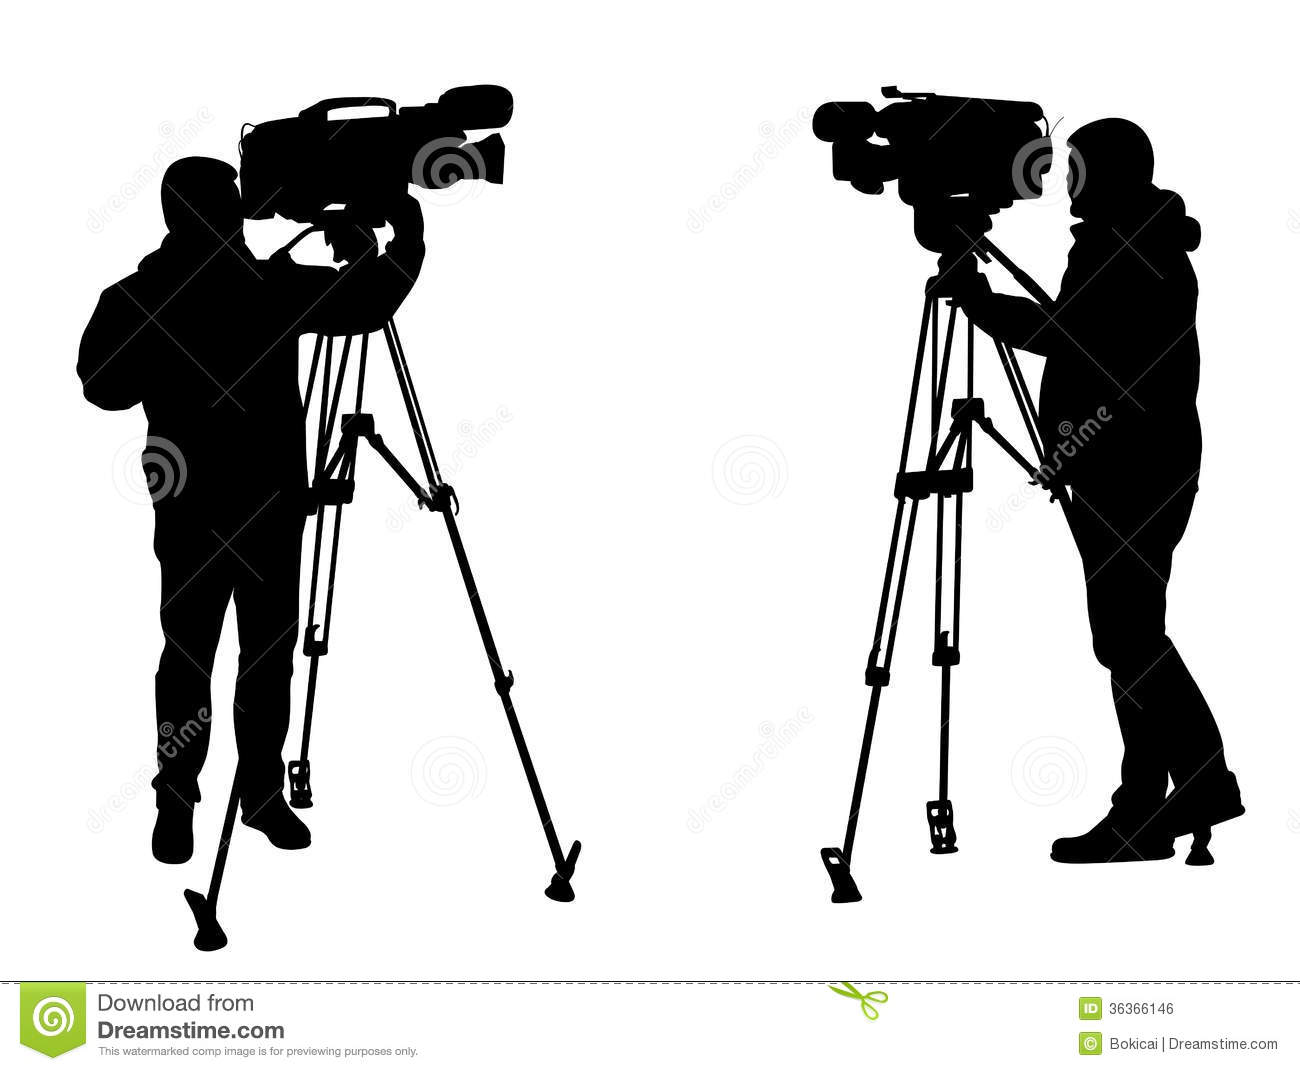 professional camera equipment - AOL Image Search Results for Camera Equipment Clipart  104xkb